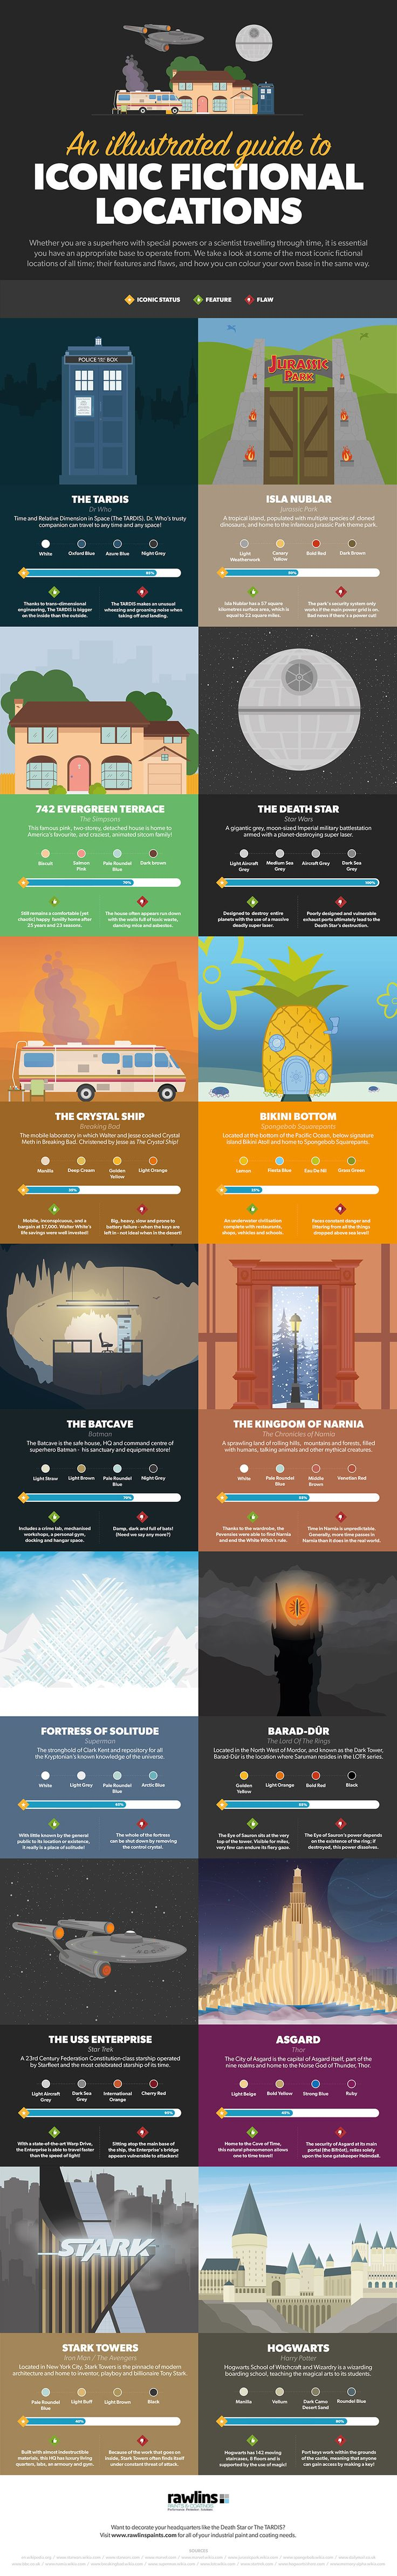 An Illustrated Guide to Iconinc Fictional Locations #infographic #Entertainment